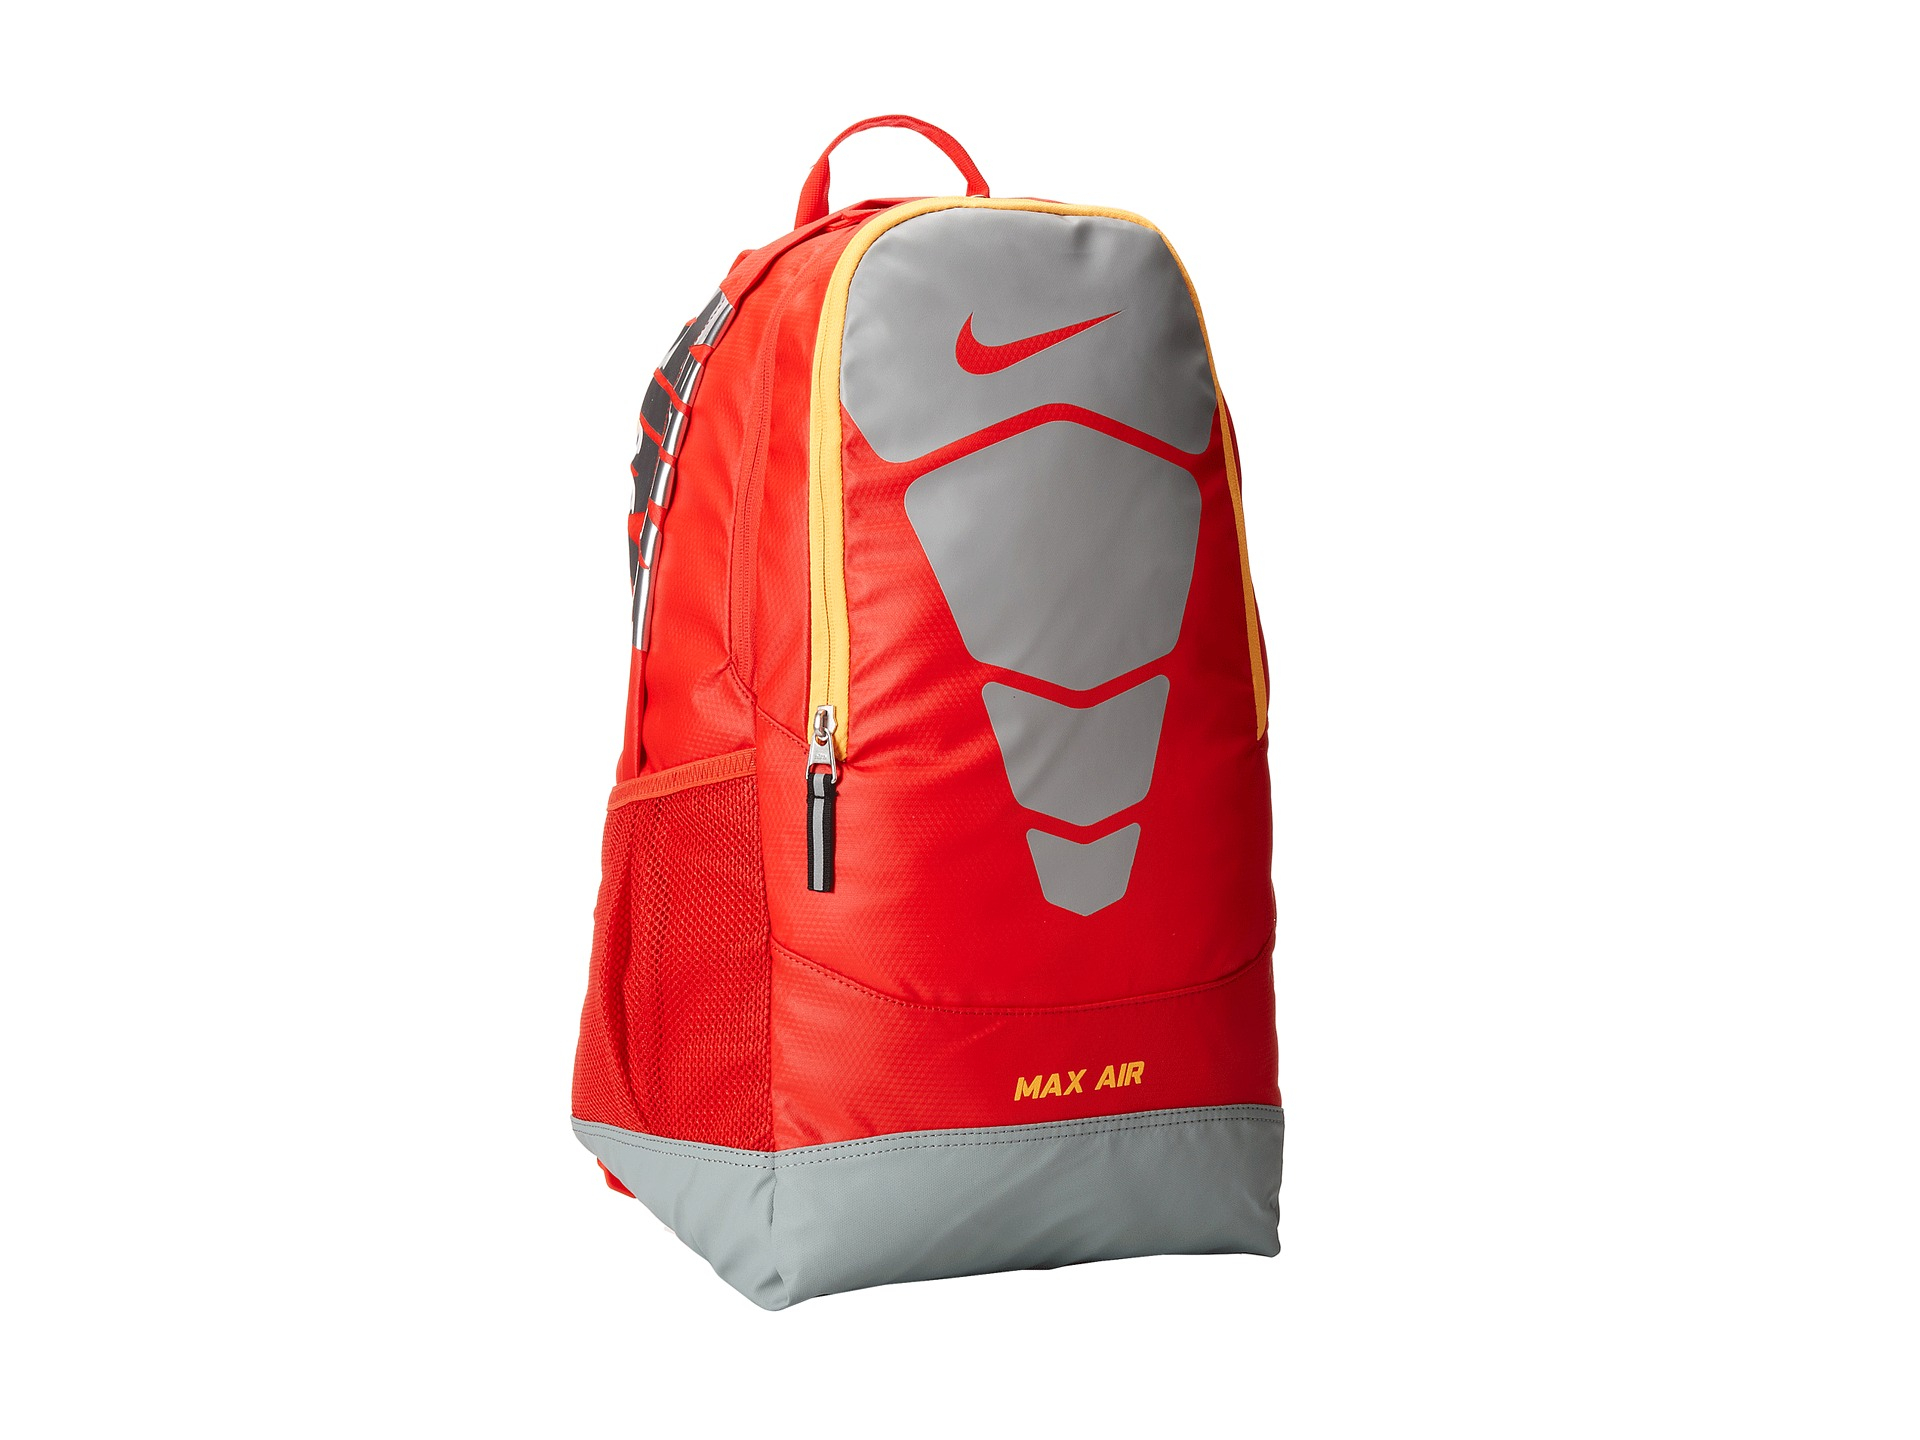 820b961e2985 Red Nike Air Max Backpack- Fenix Toulouse Handball